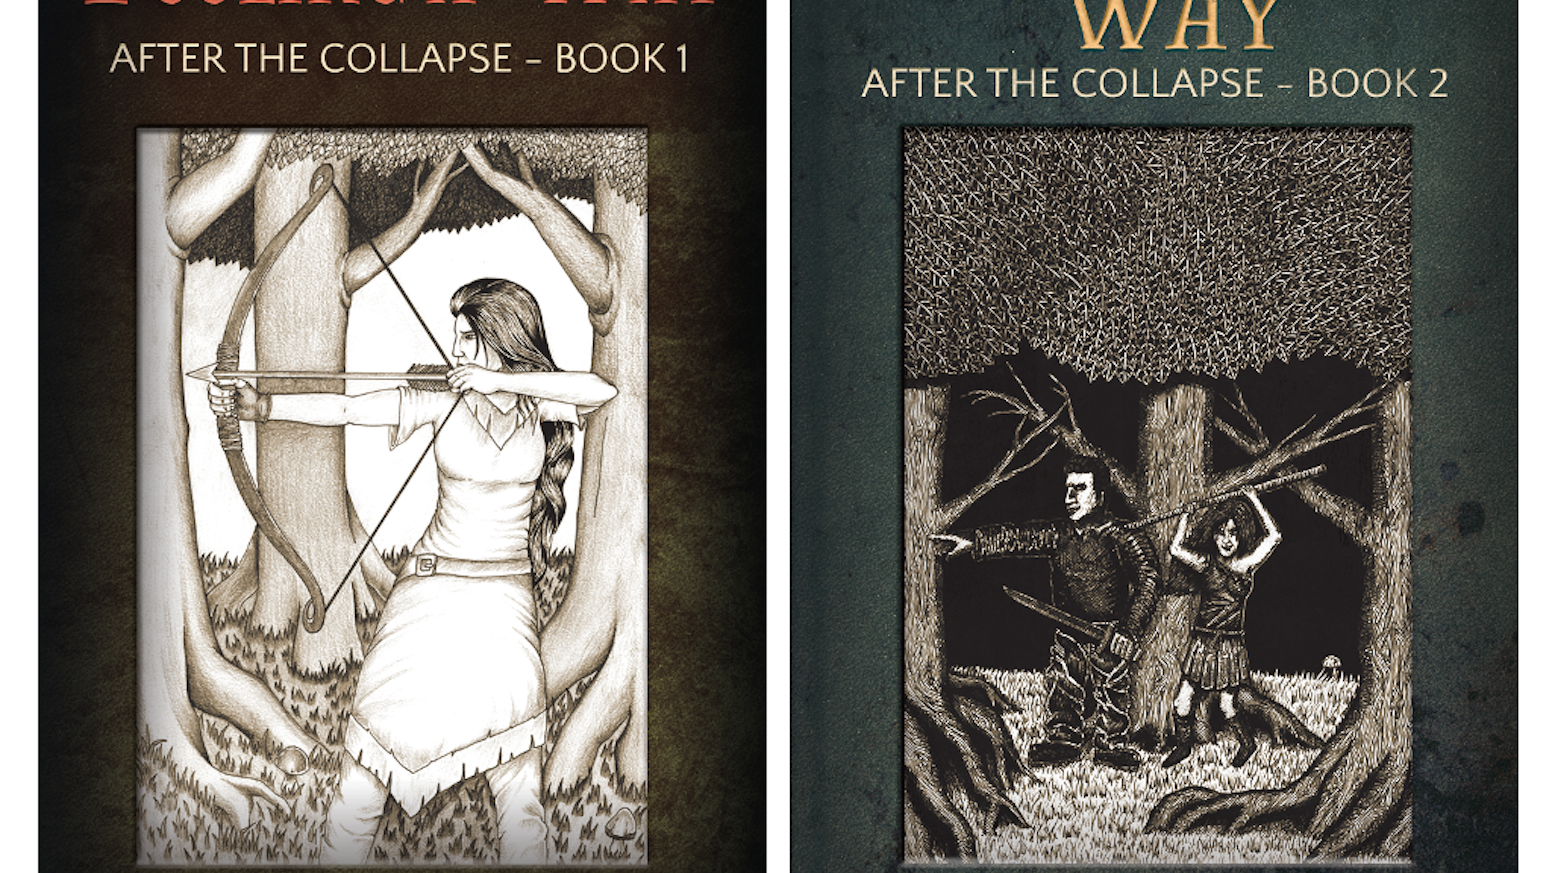 Thanks for making the campaign for cover art and design for A Final Way, the third and final book in the After the Collapse series from S. A. Gibson, a success. The artist is hard at work on the new cover.